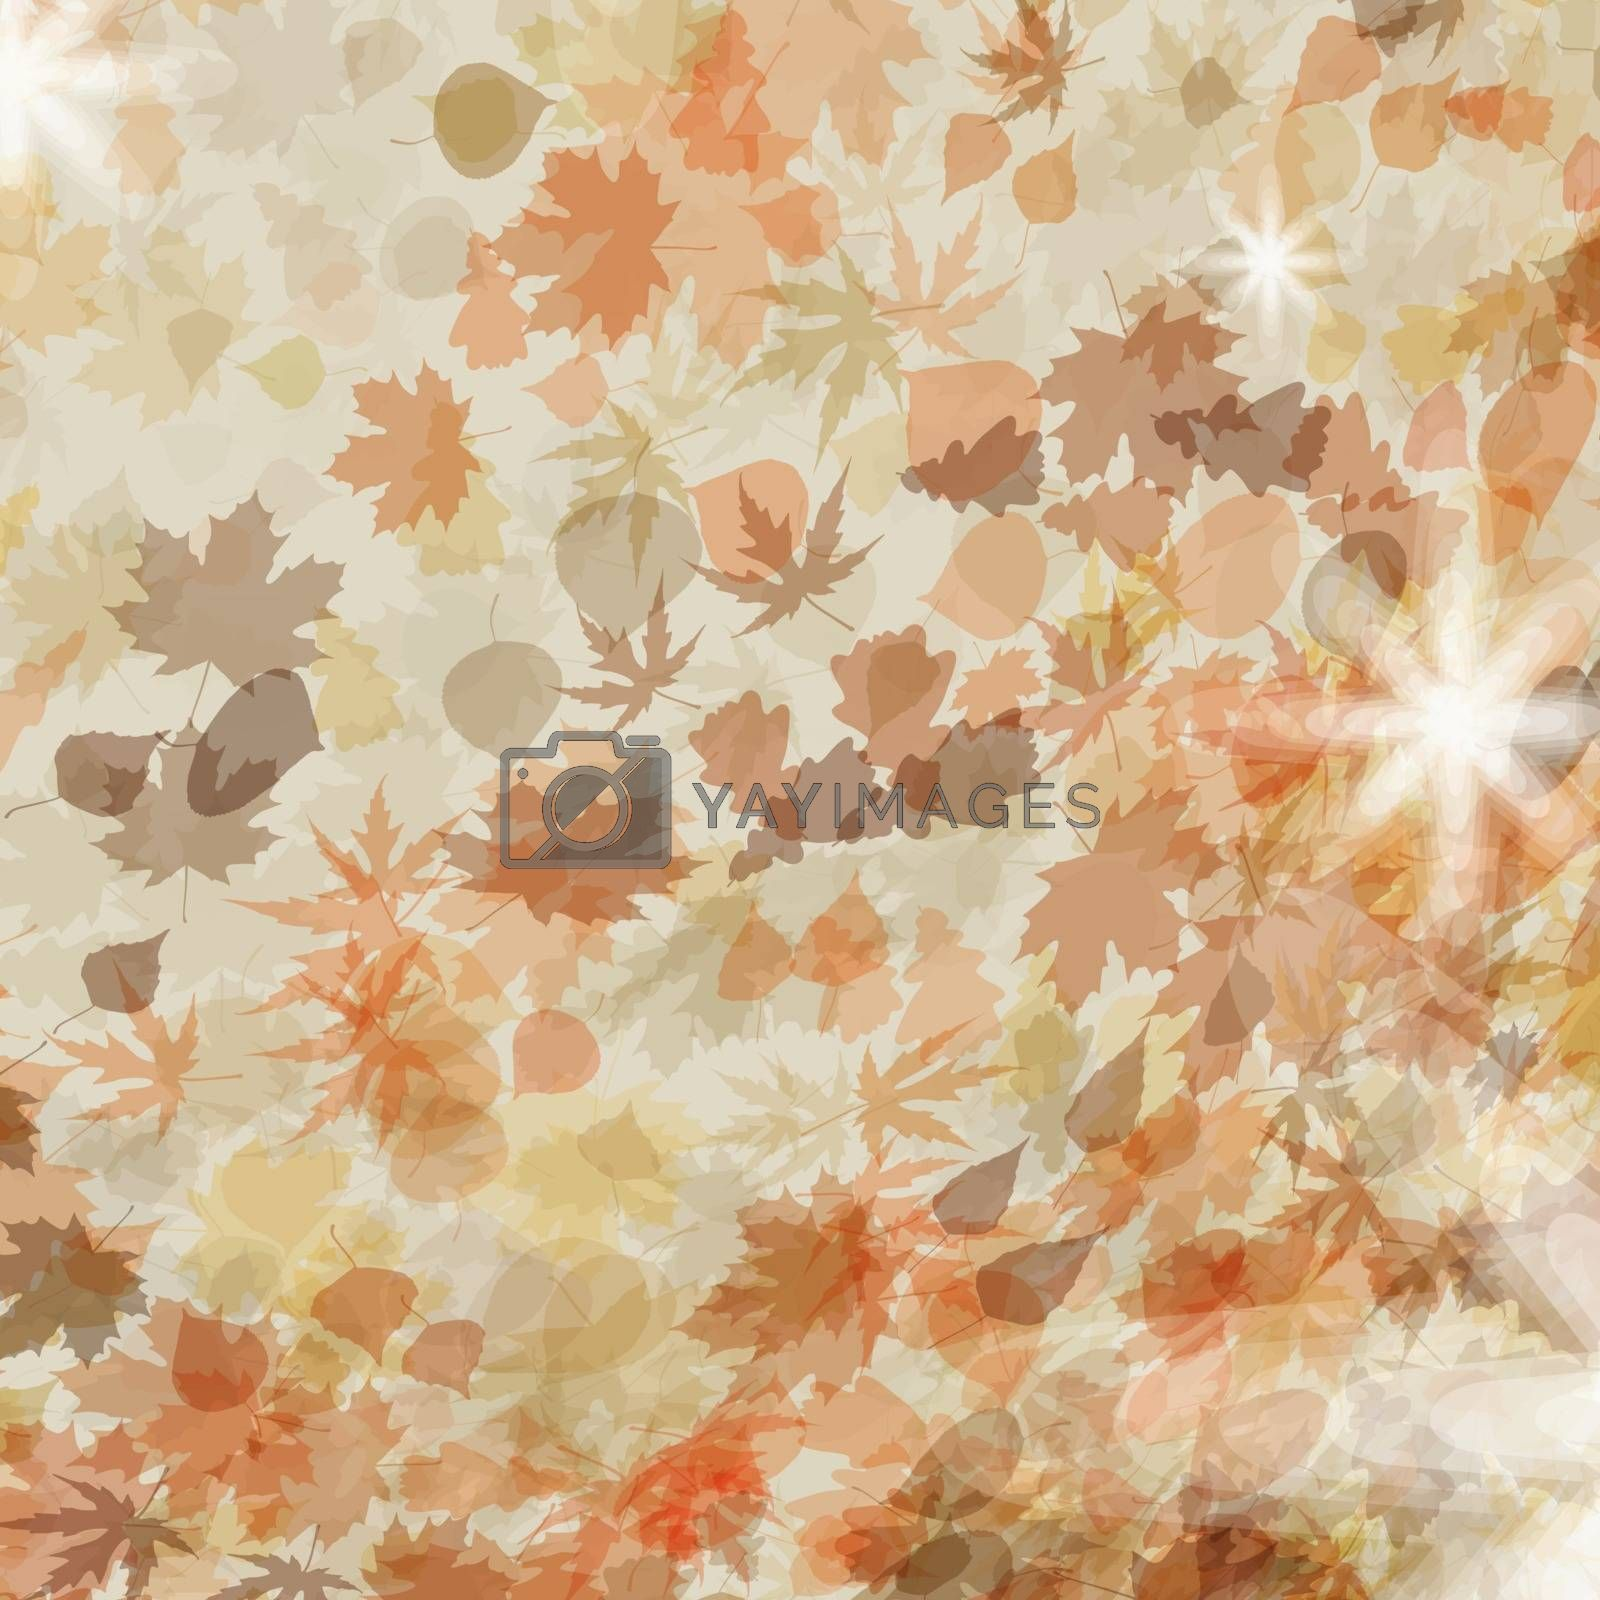 Autumn leaves. Seasonal template design. EPS 8 by Petrov_Vladimir